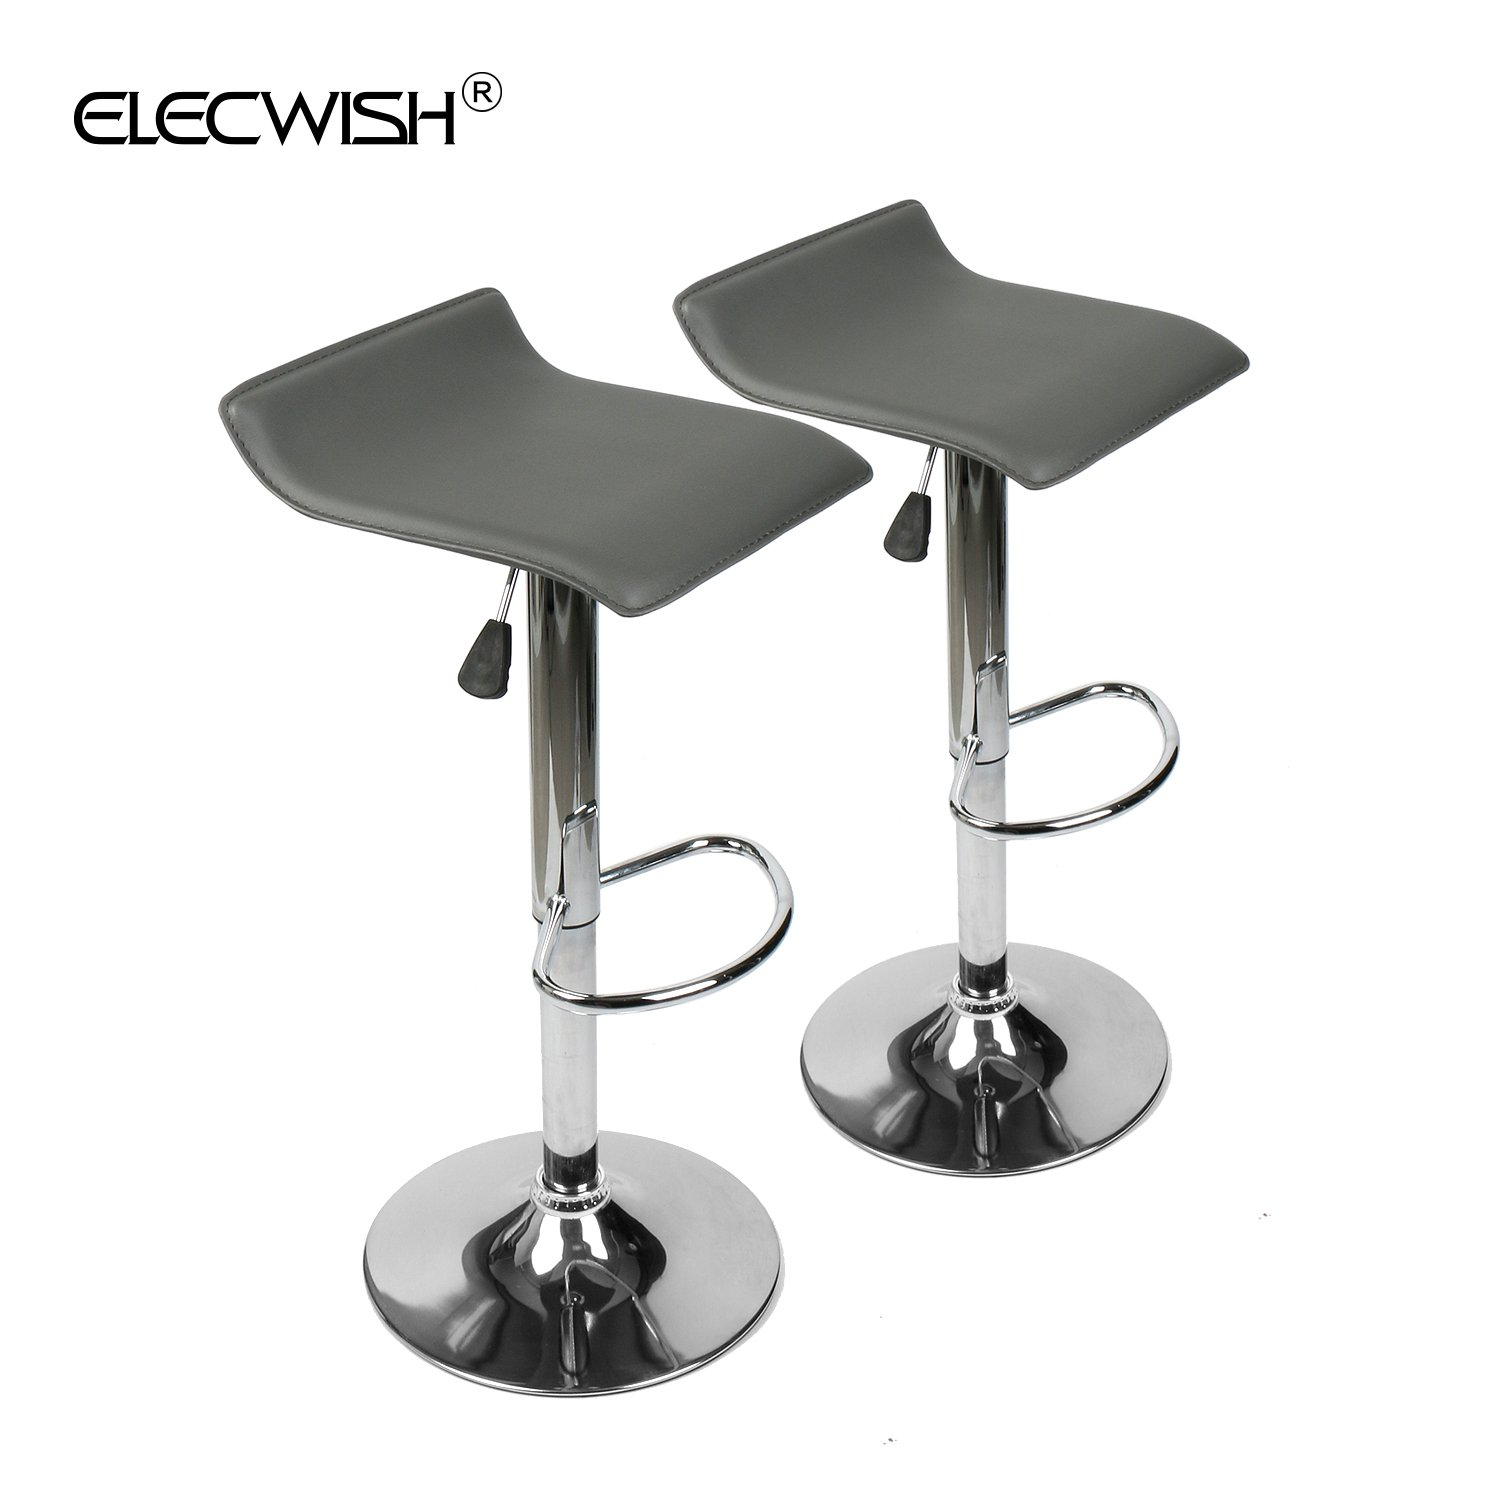 YOURLITEAMZ Modern Swivel Adjustable Home Barstools-Set of 2 for Kicthen Counter Backless Pu Leather Fabric Counter Height Airlift Home Bar Furniture Stool Chairs with ChromeBase (Grey)